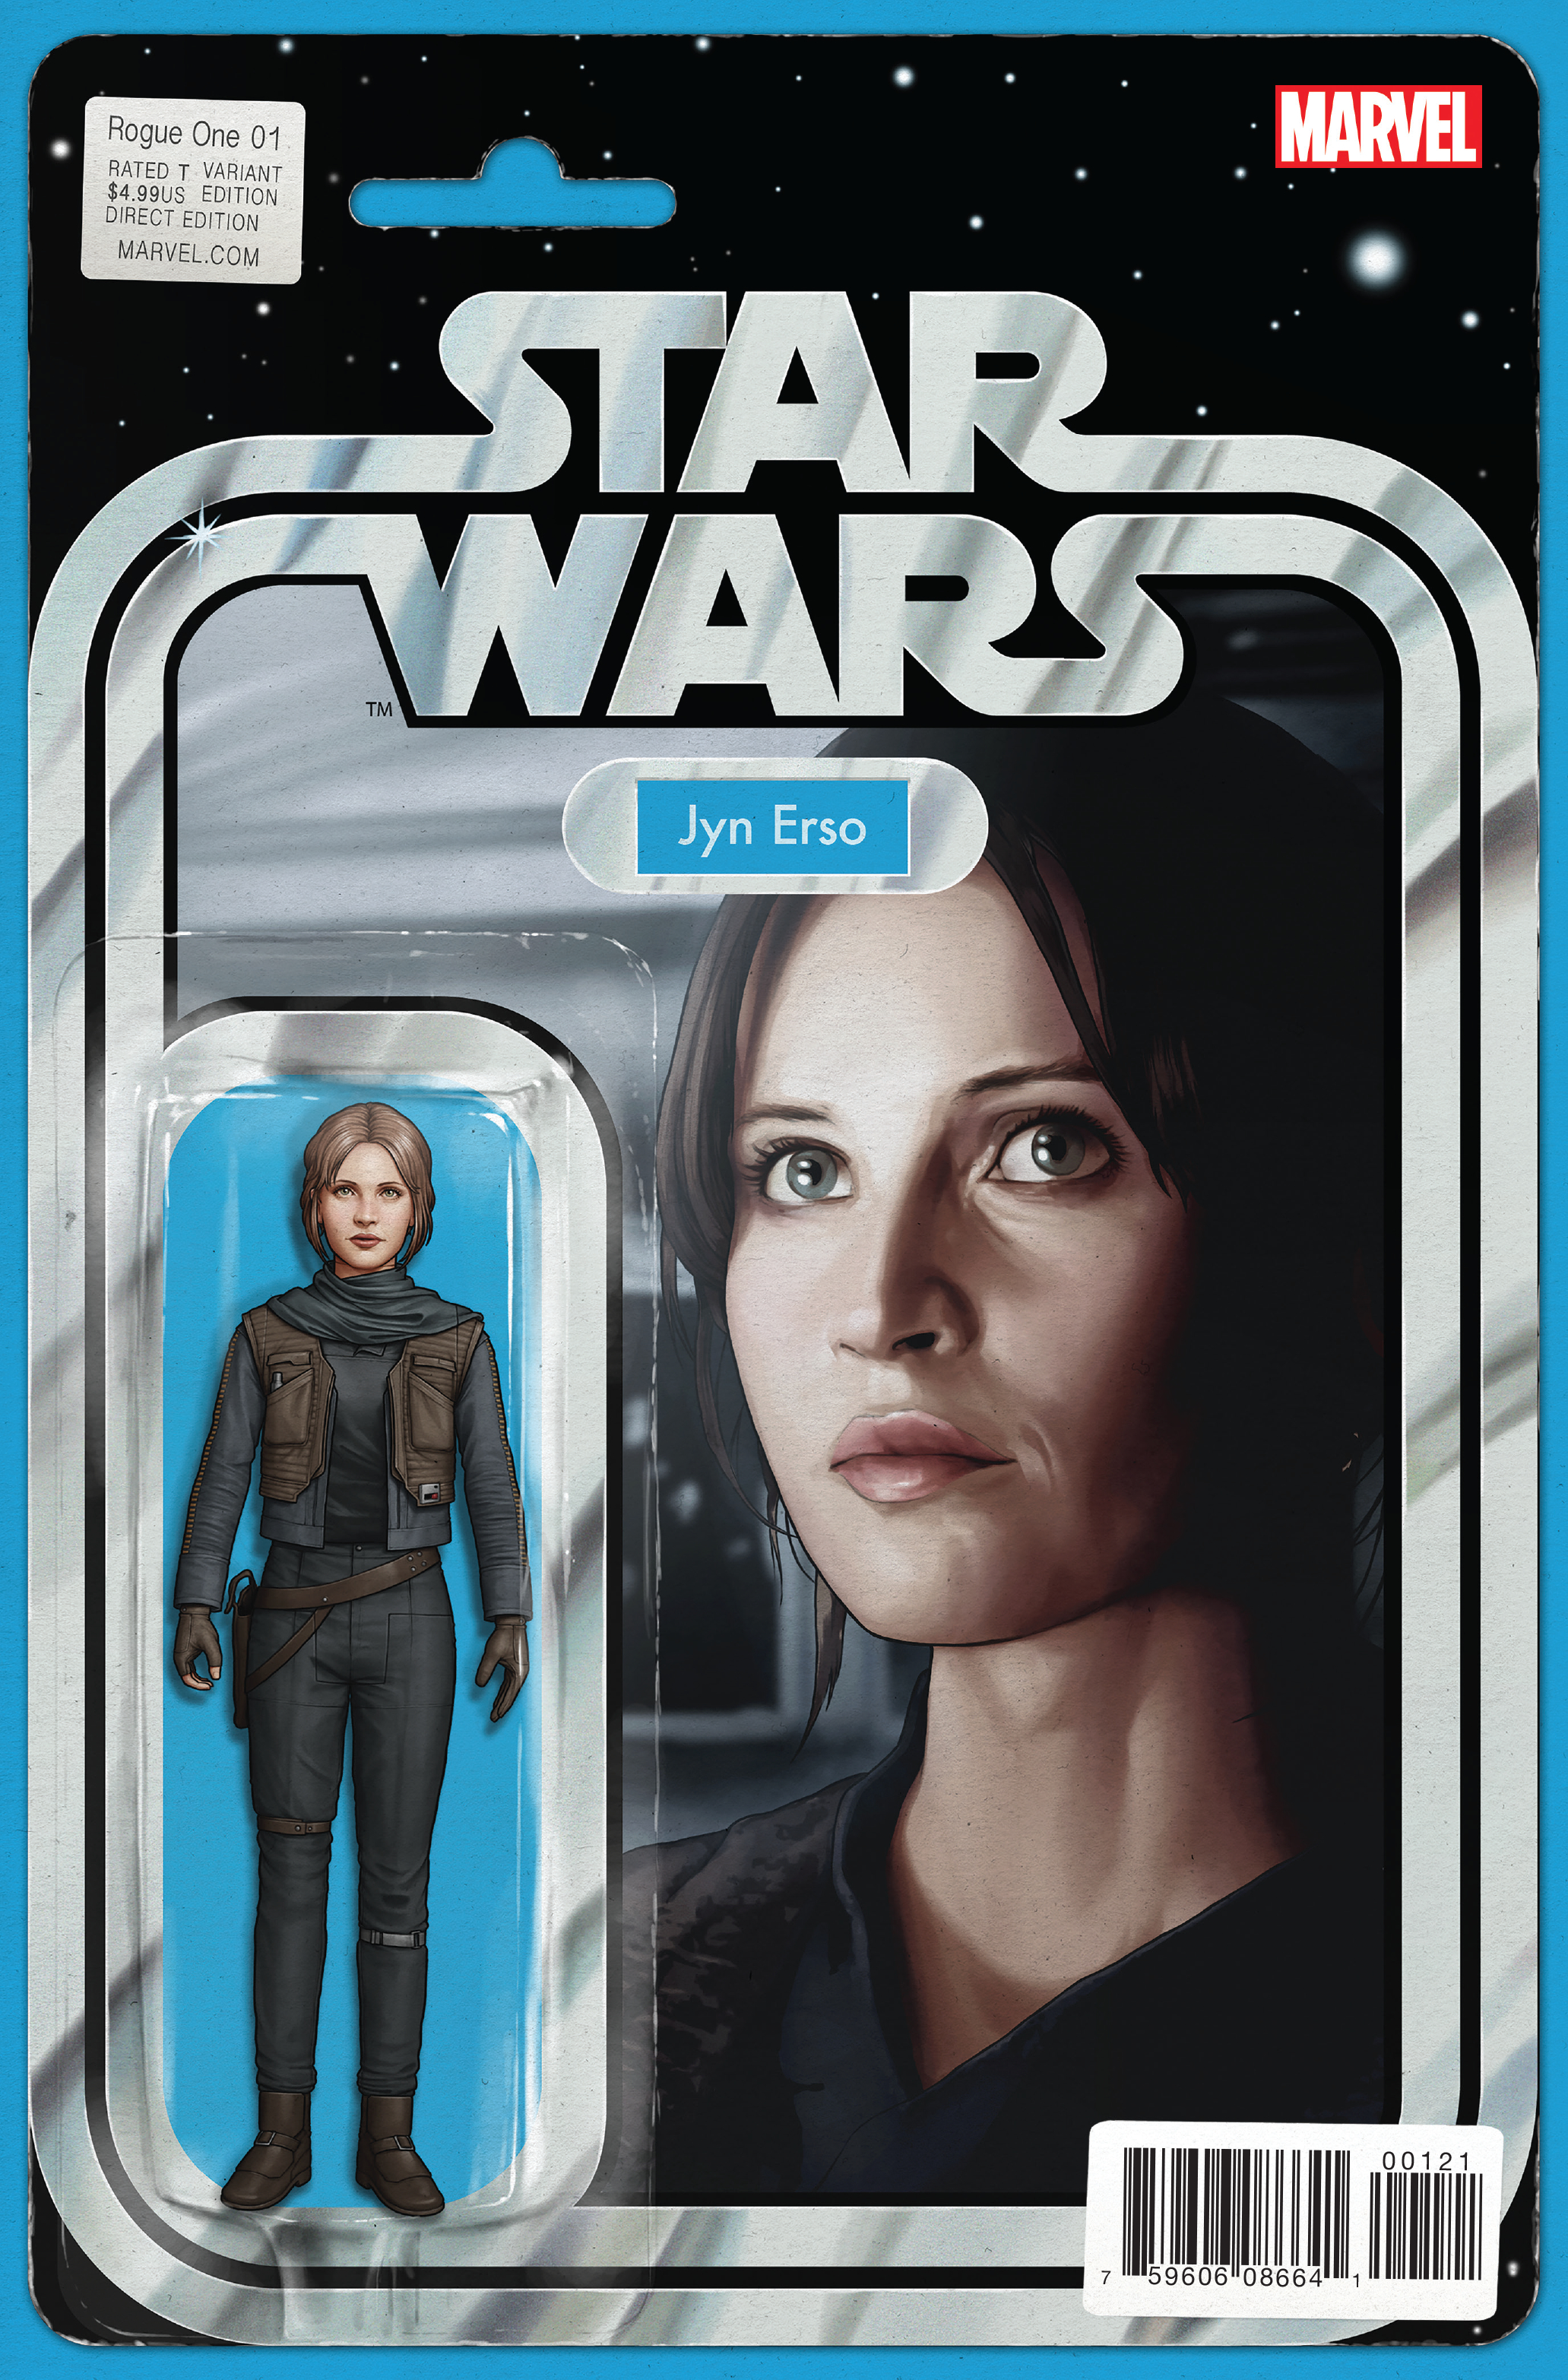 STAR WARS ROGUE ONE ADAPTATION #1 (OF 6) CHRISTOPHER ACTION